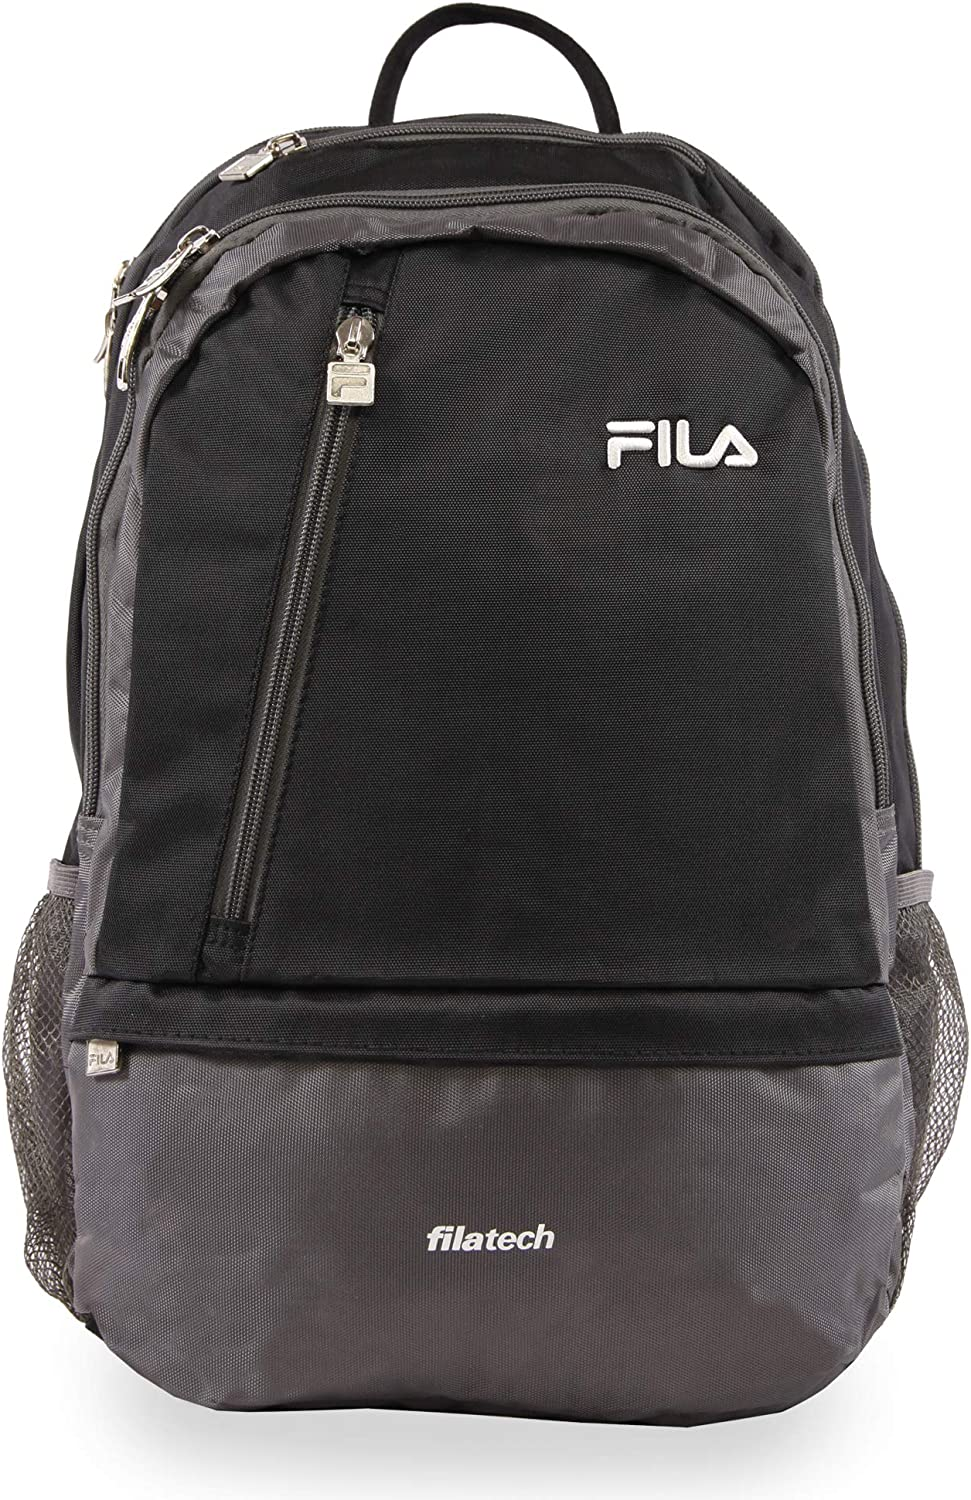 Fila Duel School Laptop Computer Tablet Book Bag, Black, One Size